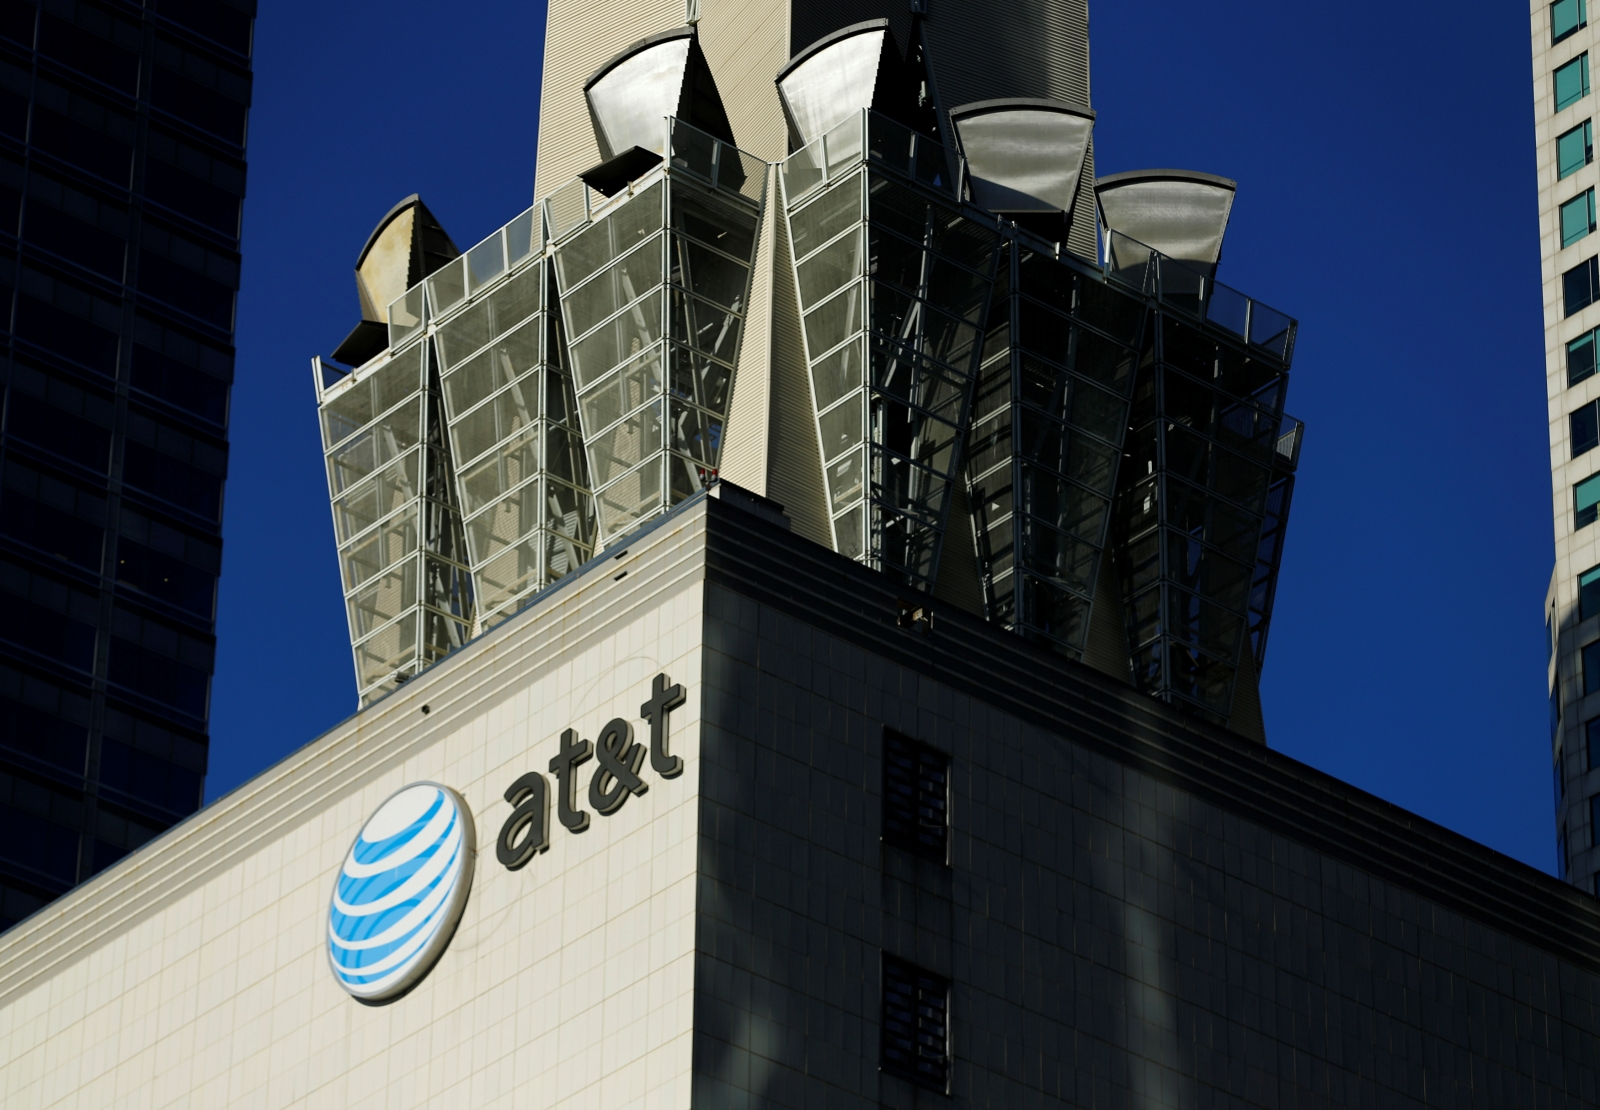 AT&T has reached an agreement in principle to buy Time Warner for $85bn - report